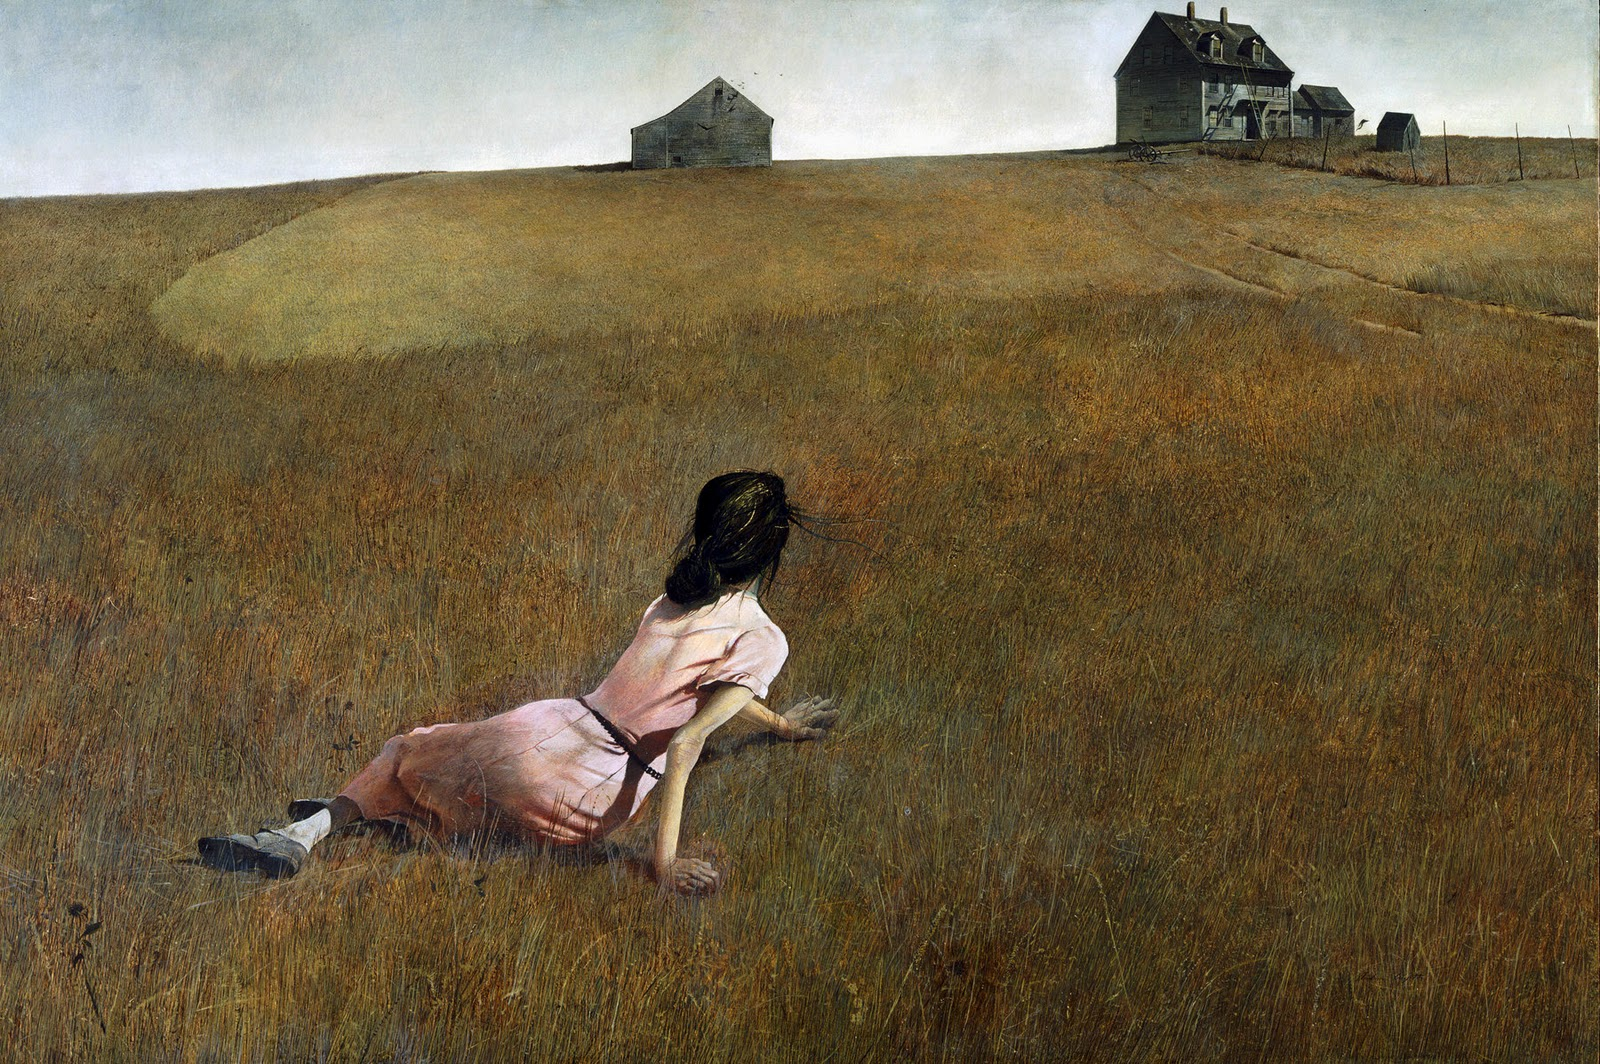 Andrew Wyeth, Christina's World, 1948 - On display at MOMA